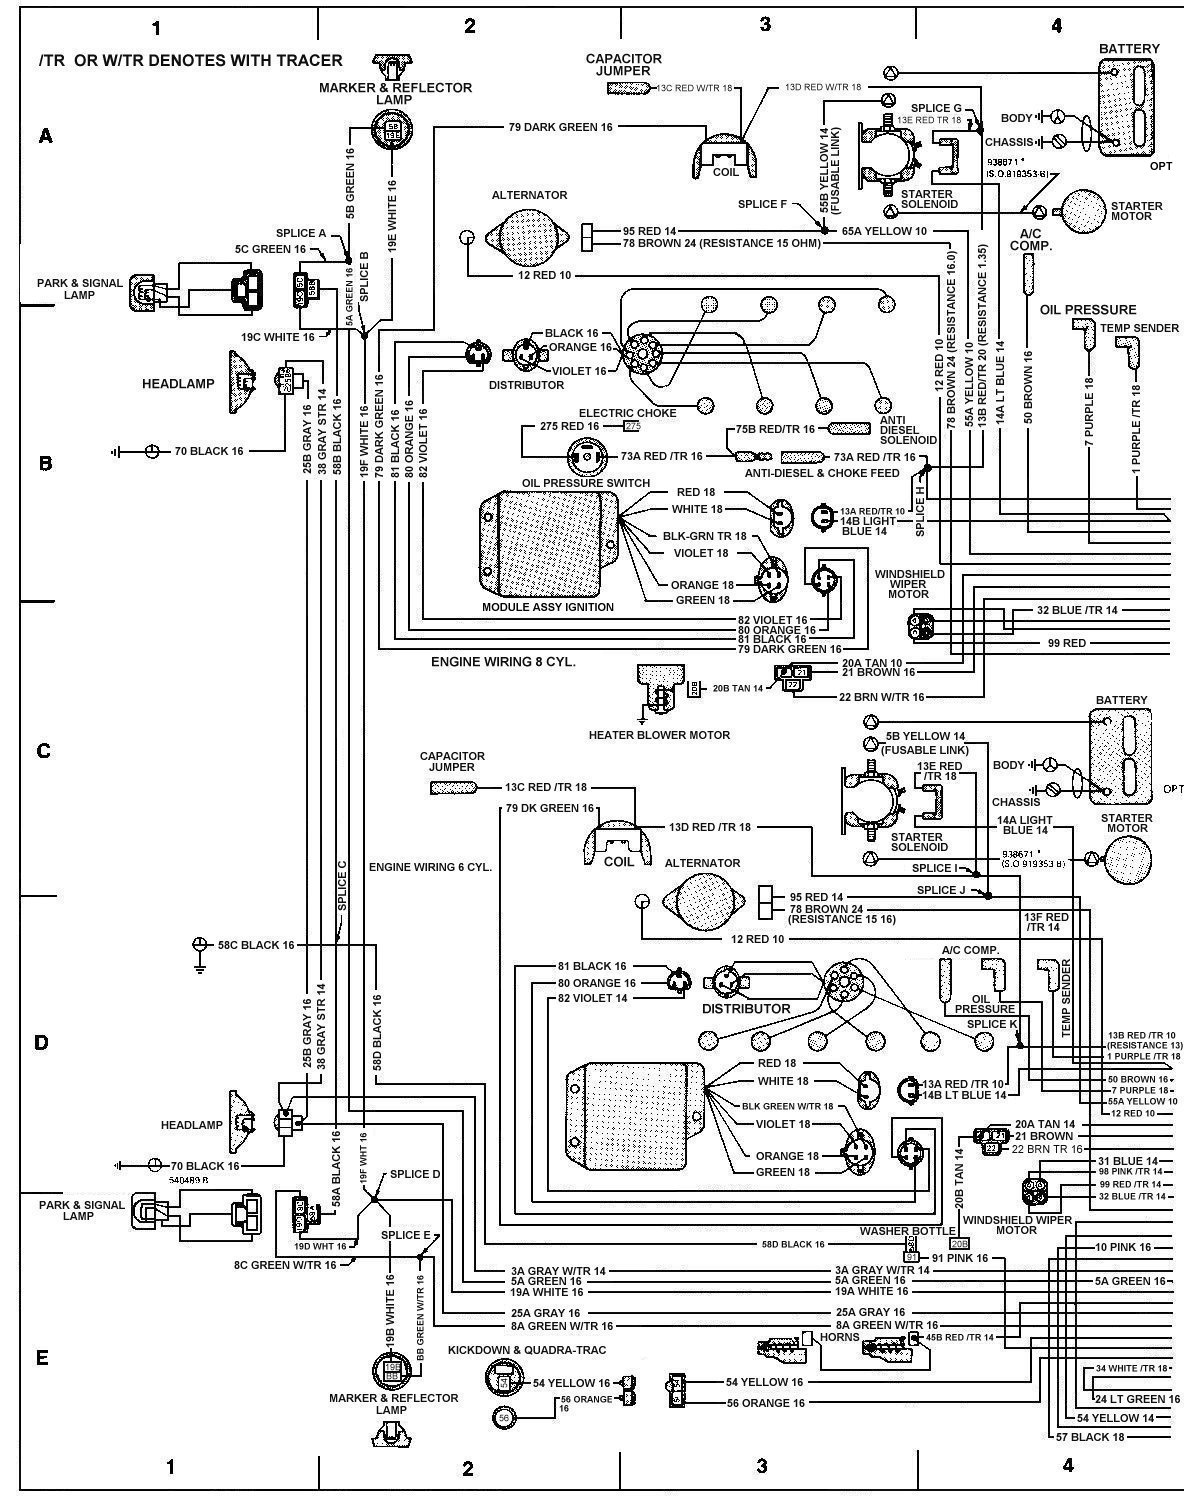 tom oljeep collins fsj wiring page rh oljeep com 1982 Jeep CJ7 Wiring-Diagram Jeep Electrical Wiring Schematic